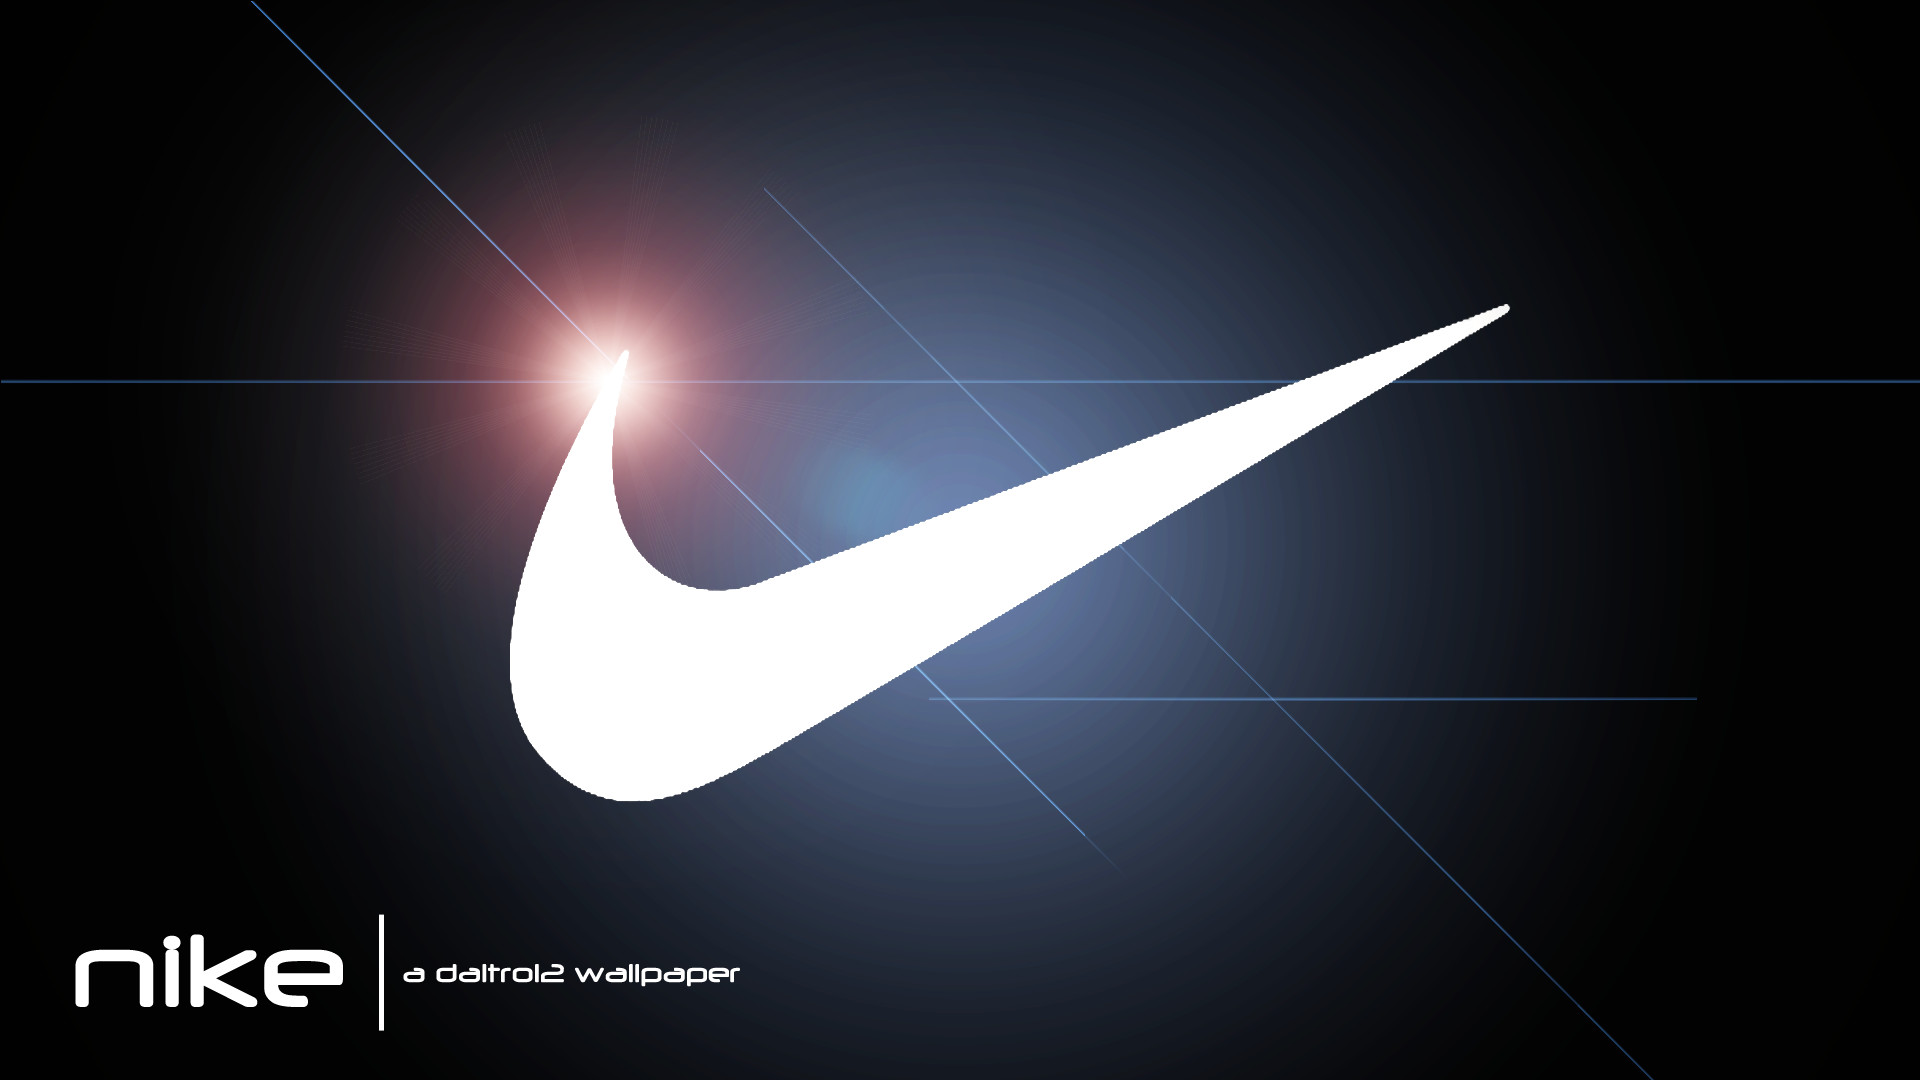 1920x1080 ( px) - Nikes Wallpapers - HD Wallpapers